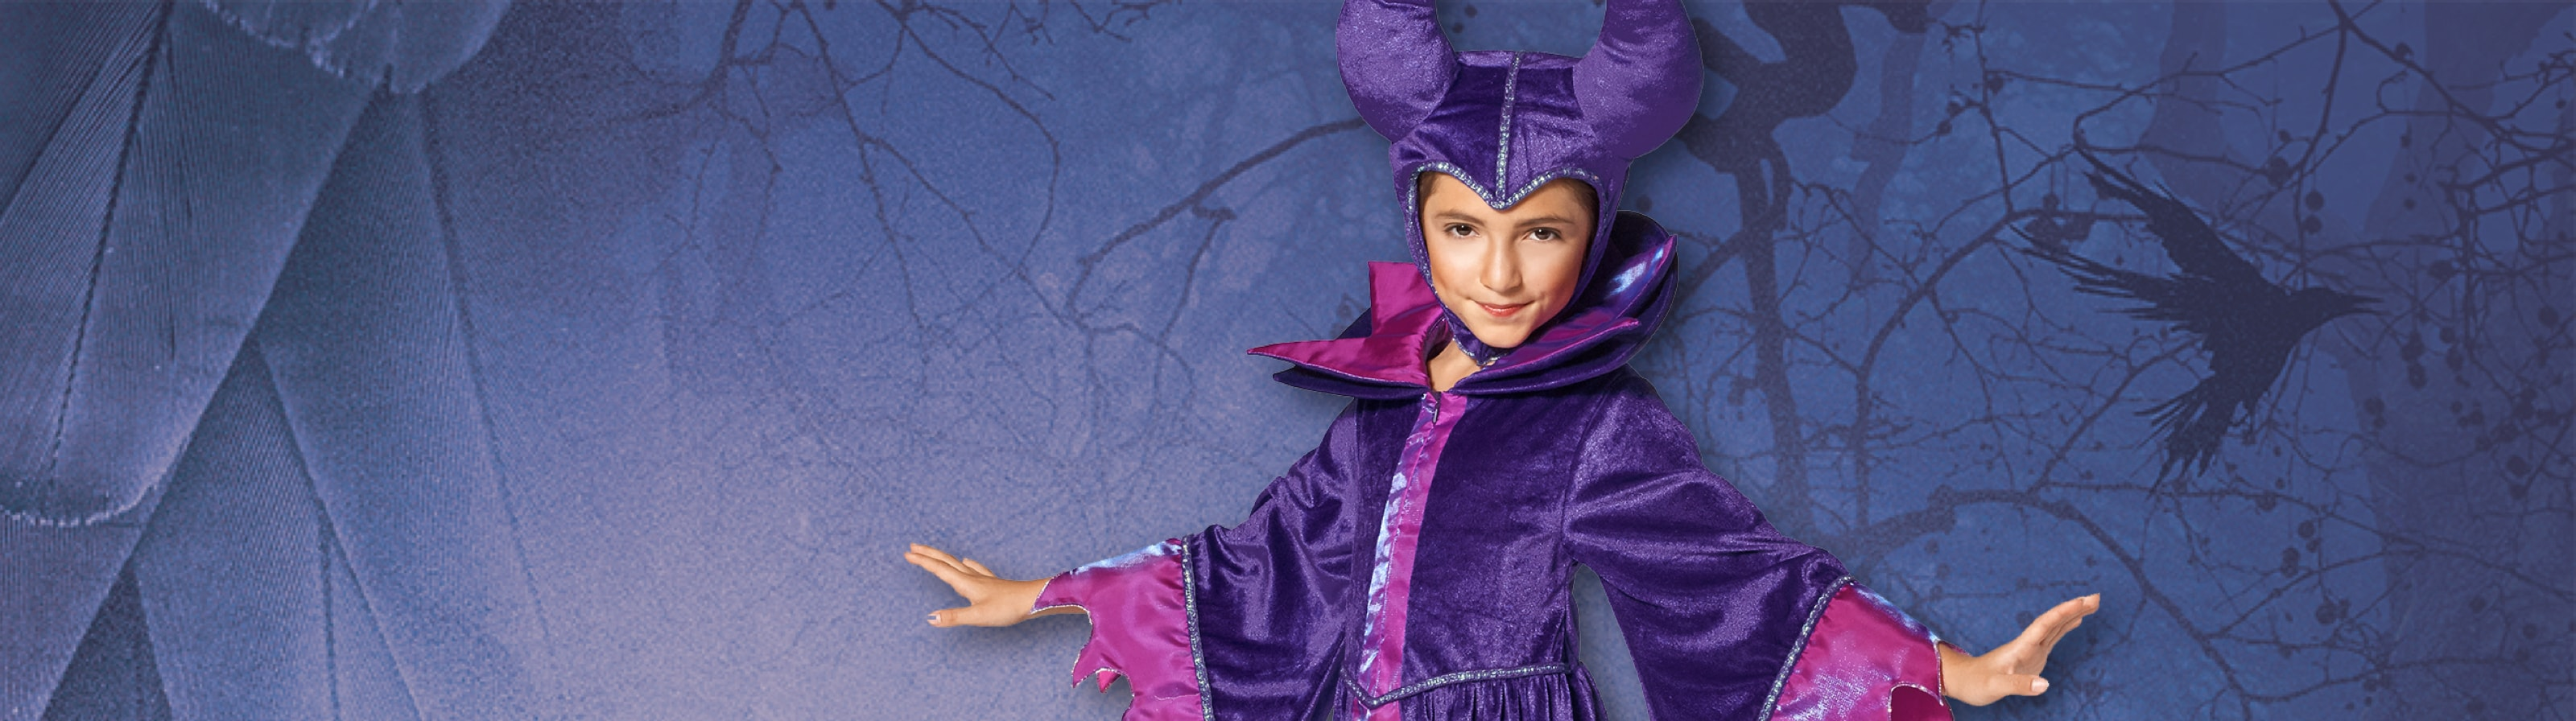 Maleficent: Mistress of Evil bij shopDisney